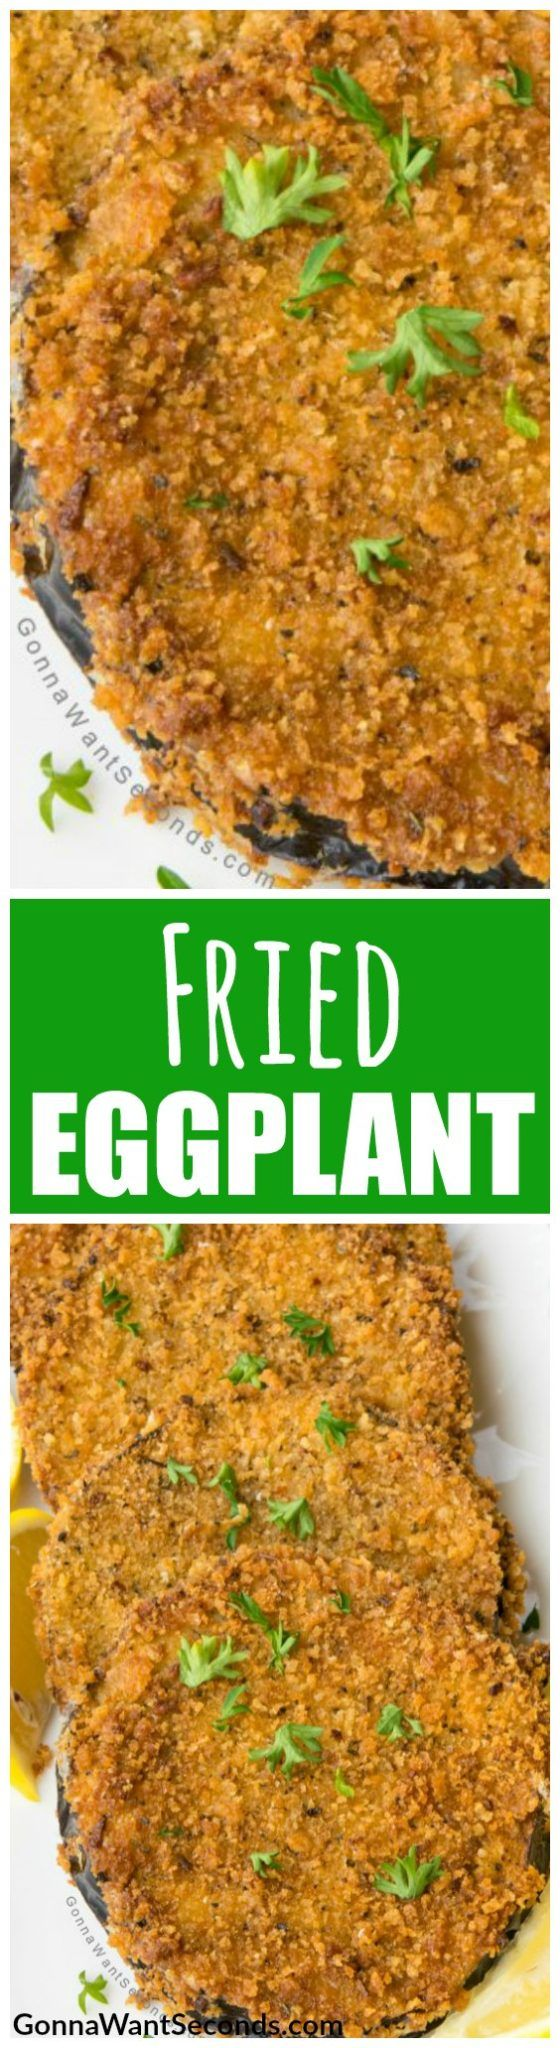 Our Fried Eggplant recipe, creates an easy crispy dish that's all about texture.This Italian delight only needs a couple of unique ingredients, like panko, to make it foolproof. Our technique shows you how to getting everything just right. Makes a great appetizer, side dish or light meal. #Easy #Recipes #Parmesan #WithFlour #Vegan #Deep